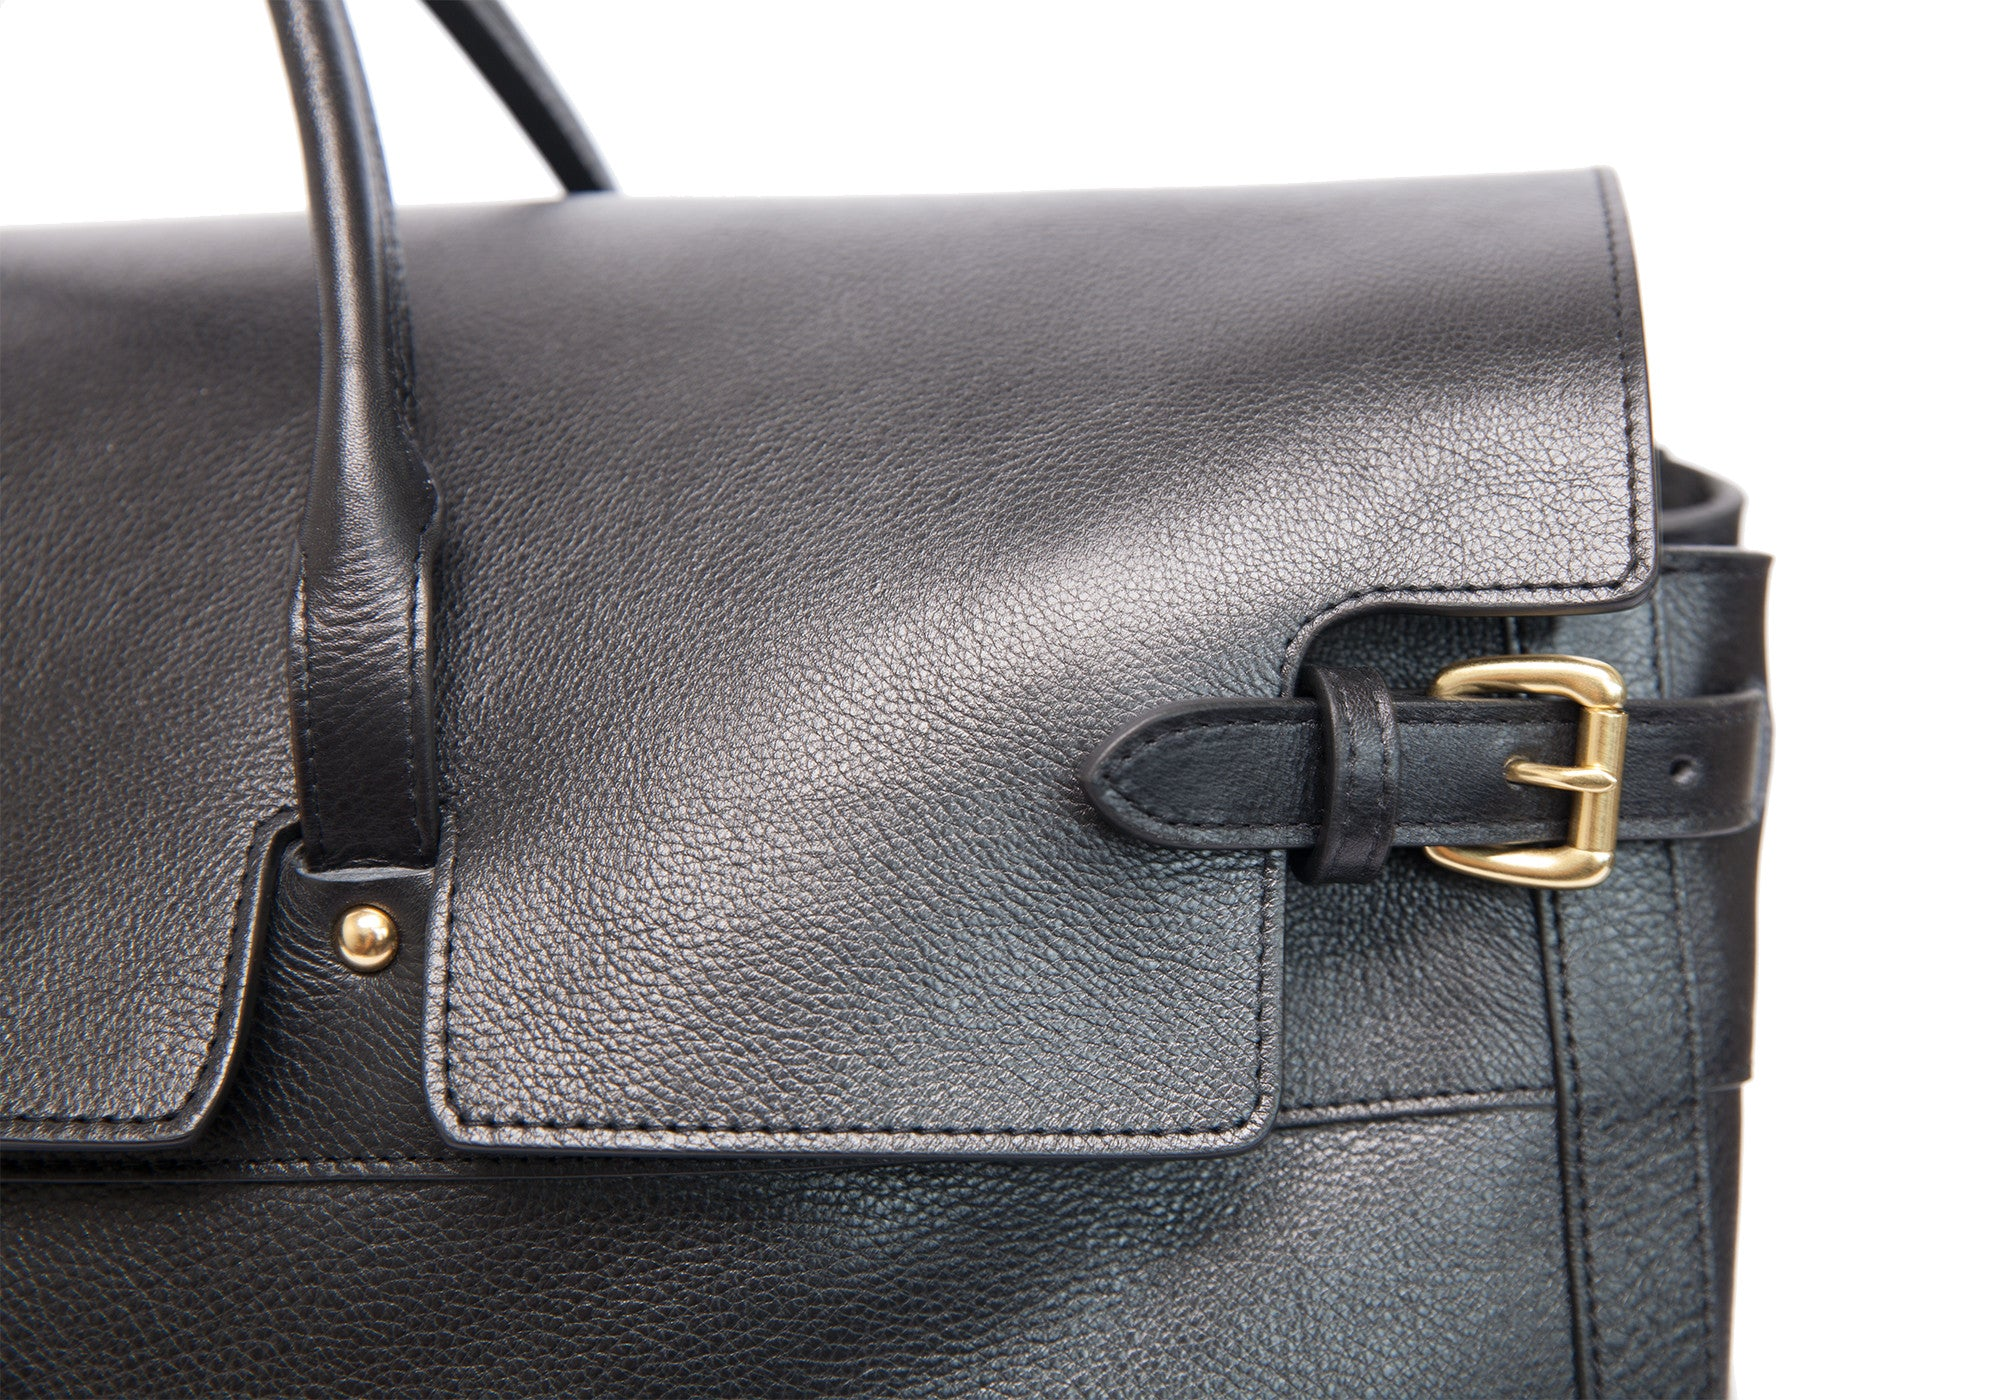 Front Buckle View of Leather Day Satchel Black